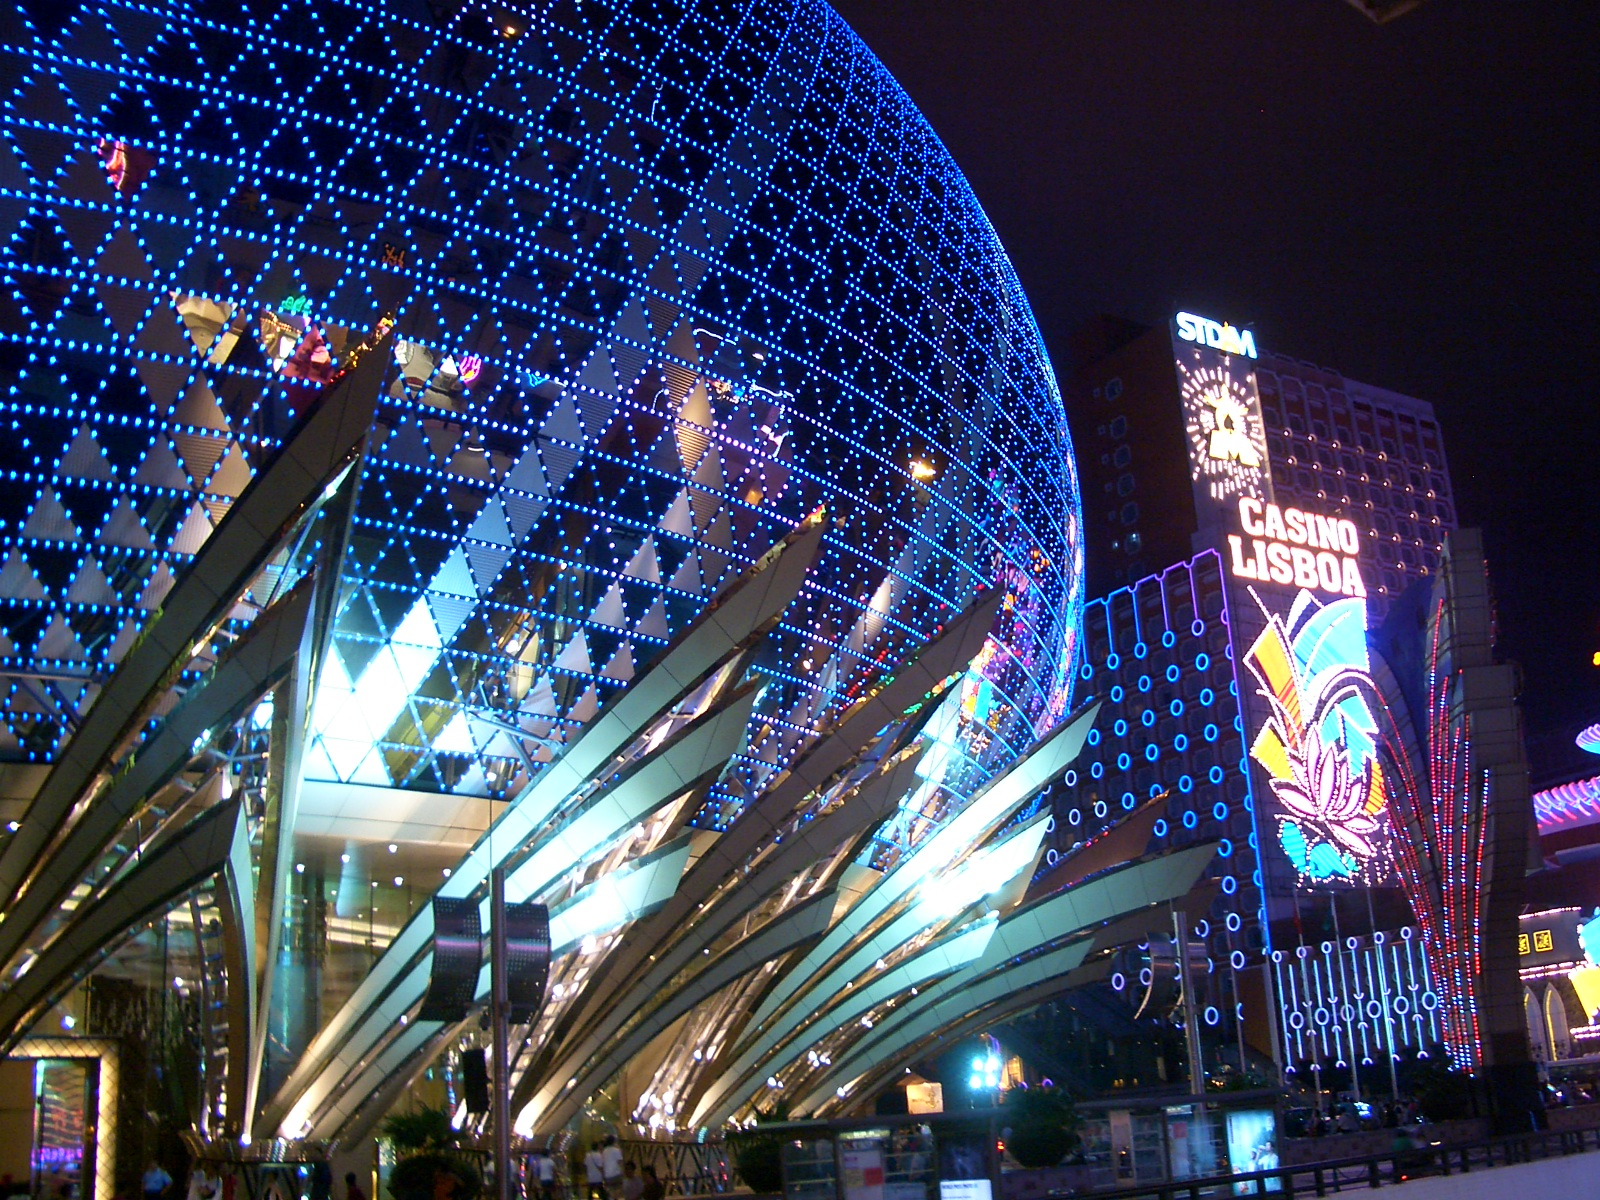 Www.casino lisboa closest casino with poker tables